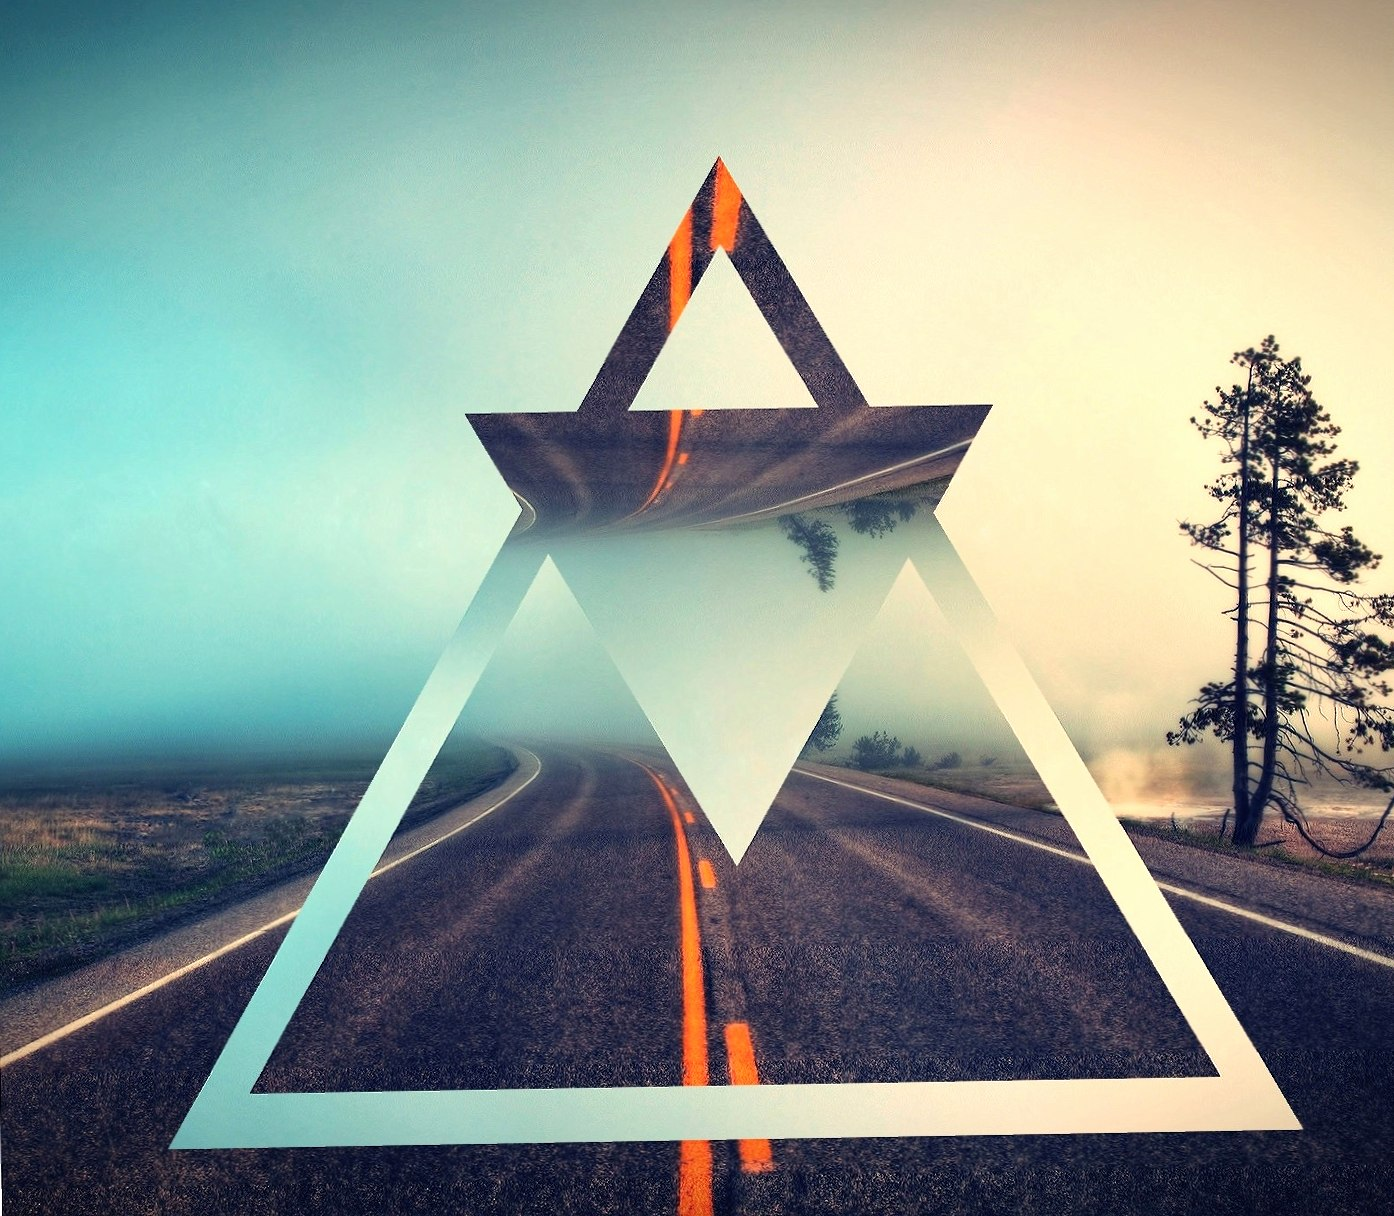 Triangle Road wallpapers HD quality